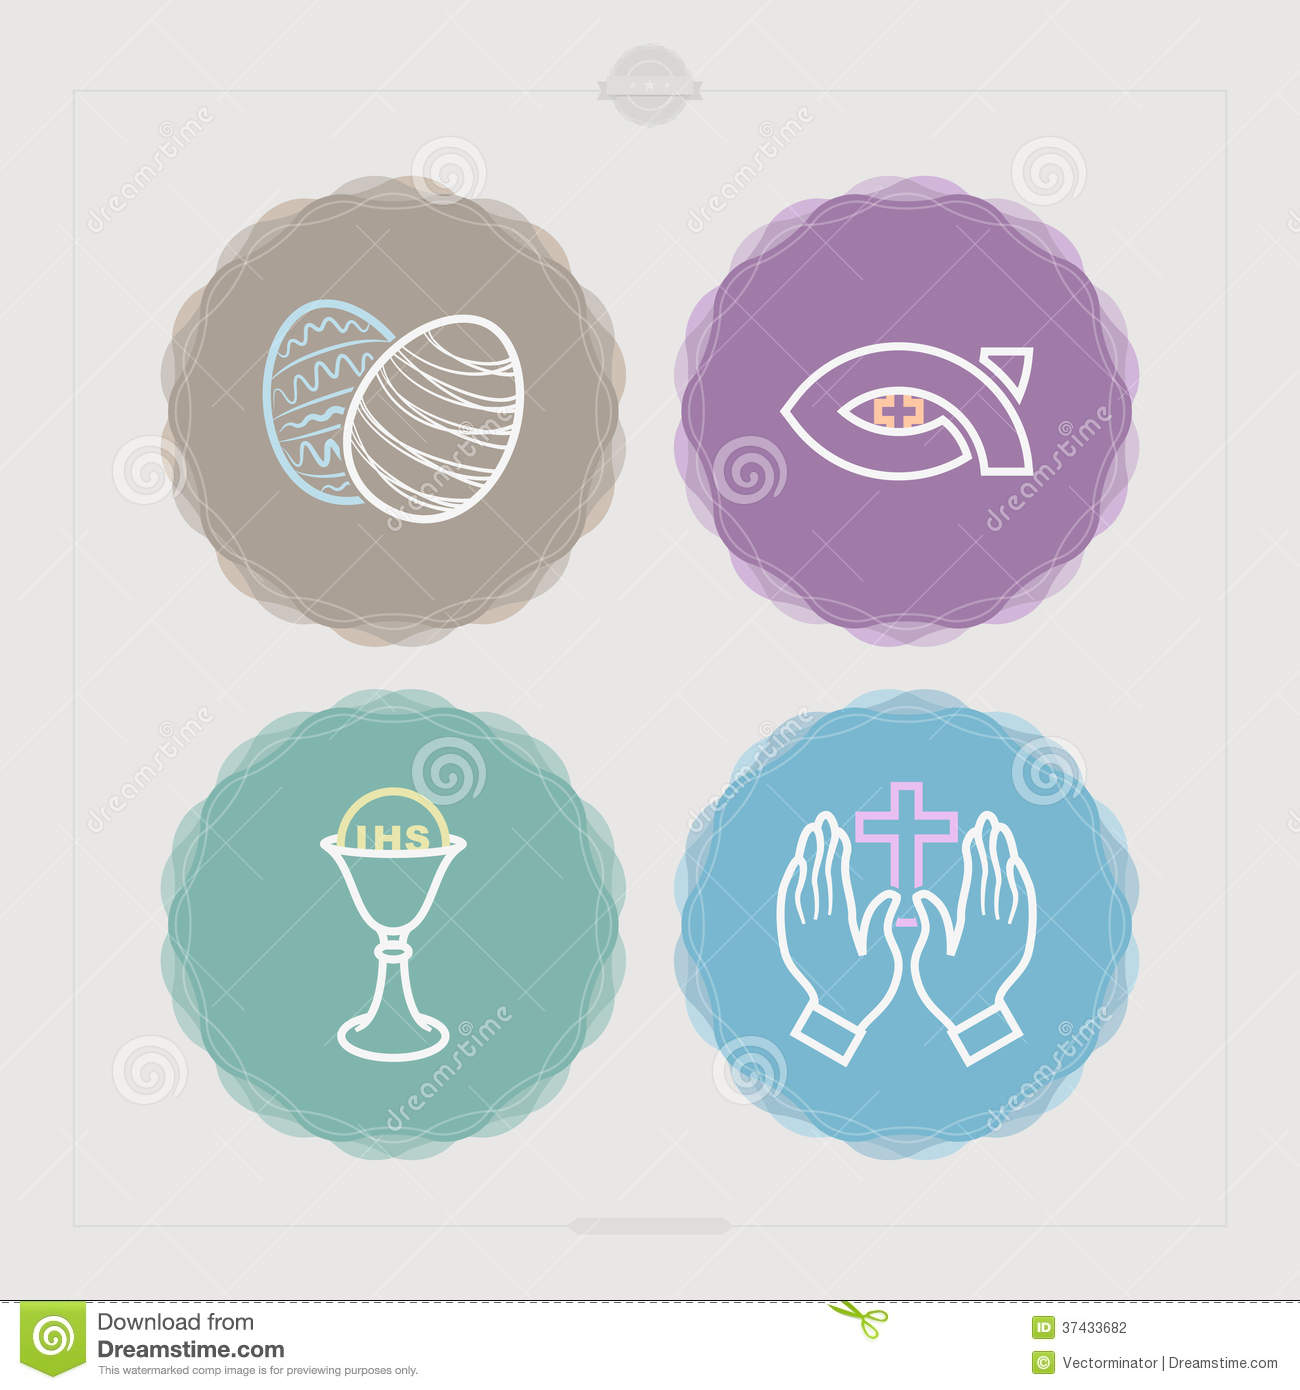 ... Chalice, Praying hands. Rosette Vector Icons Set (with some